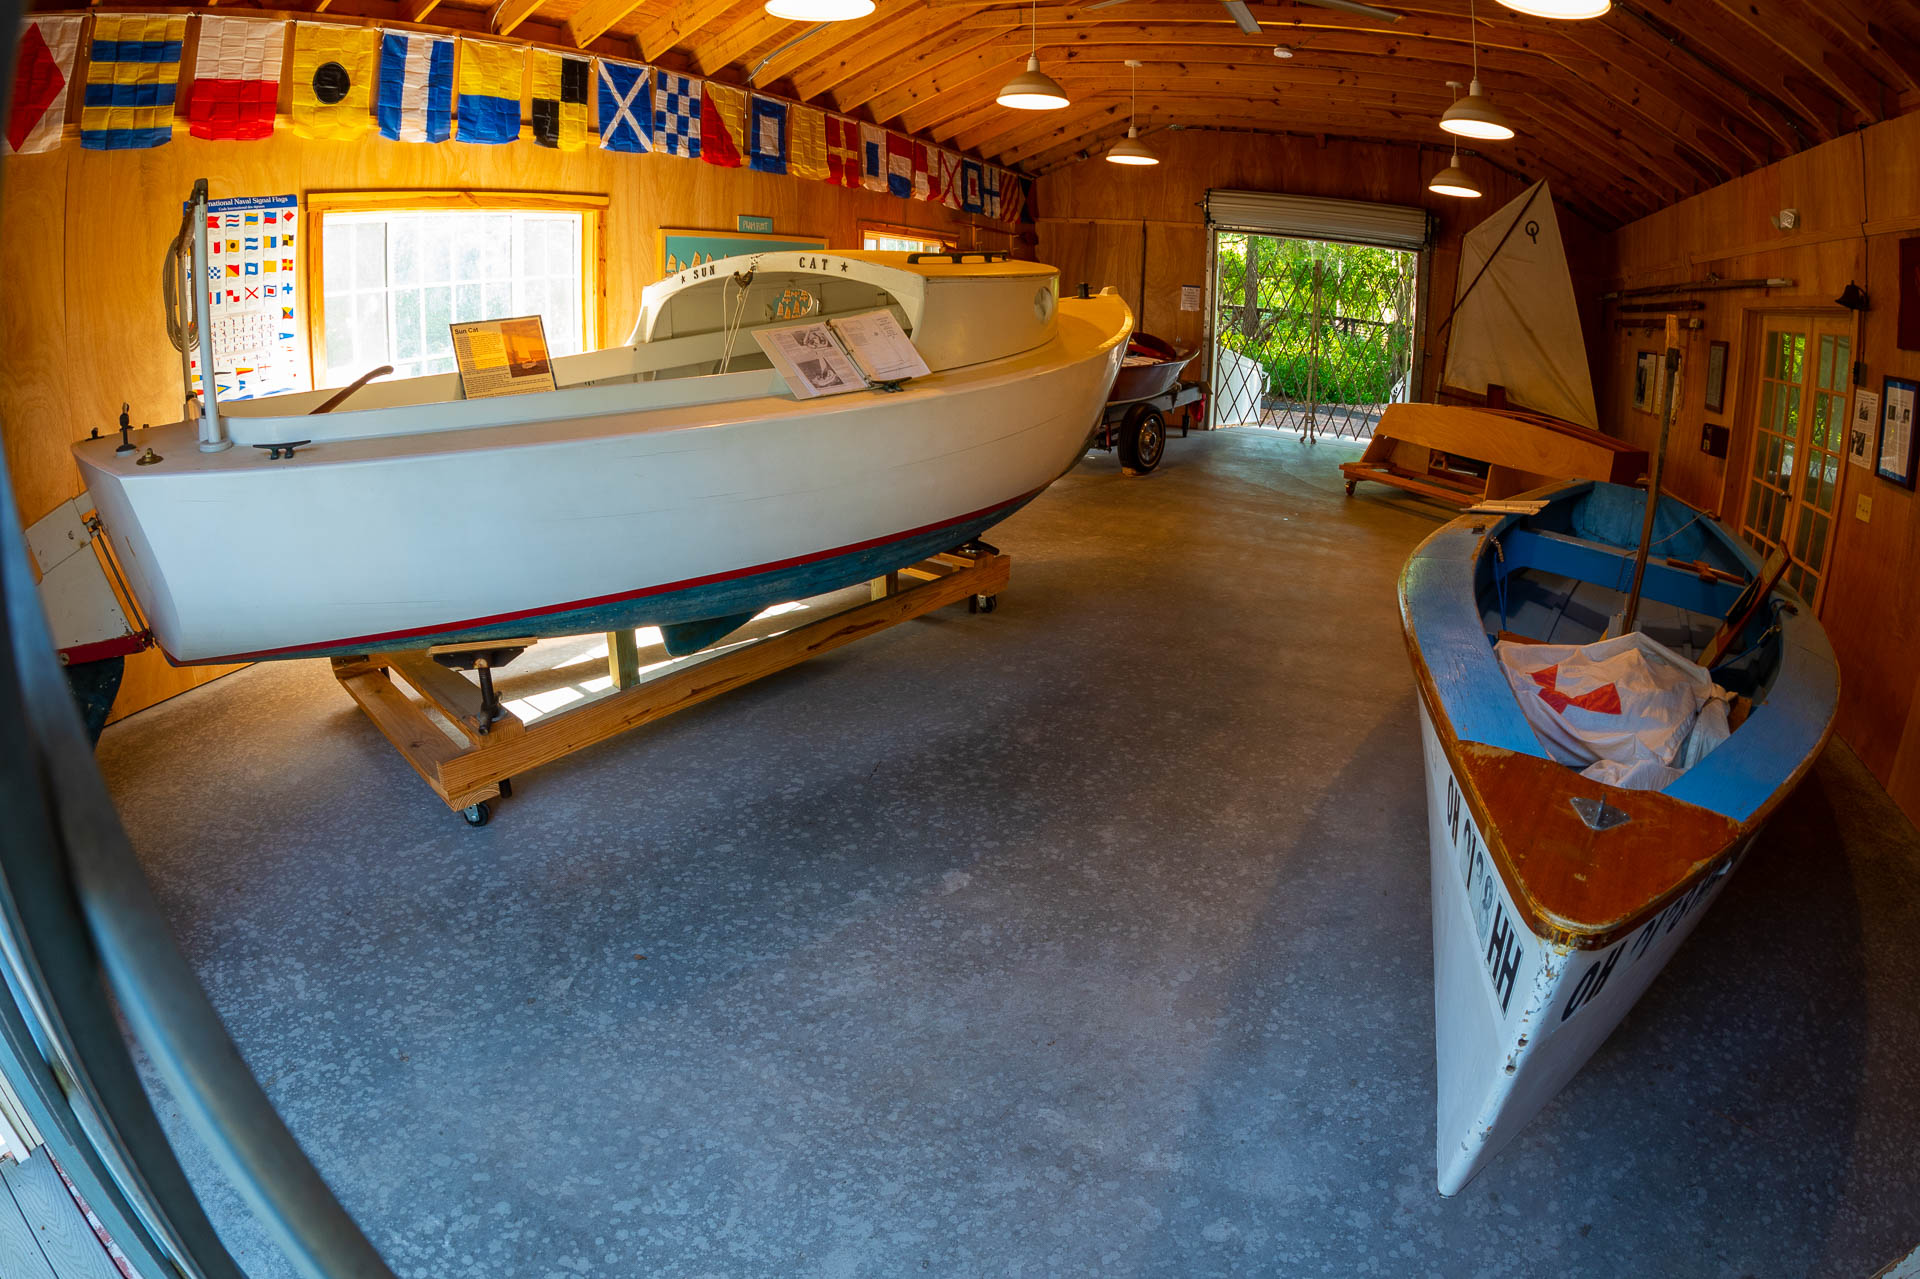 Inside the McKay Creek Boatshop